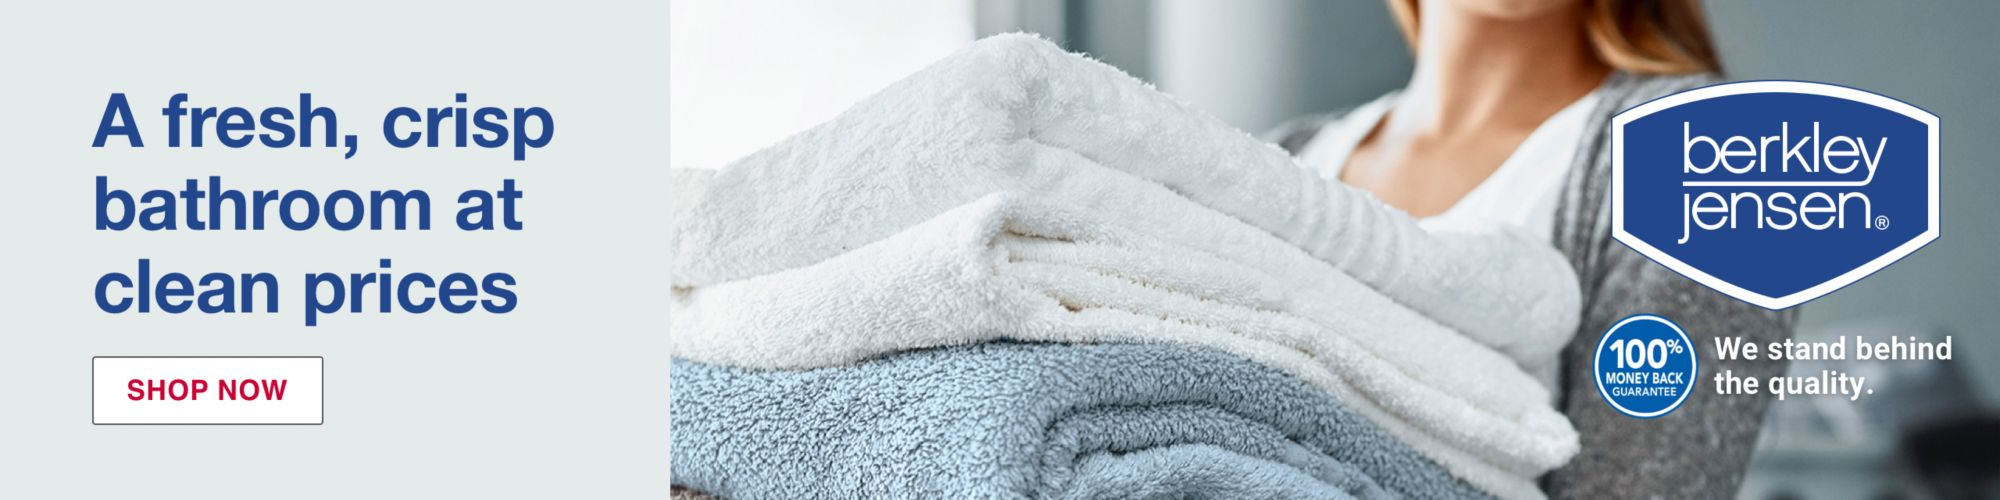 A fresh, crisp bathroom at clean prices. Berkley Jensen. We stand behind quality. Click to shop now.